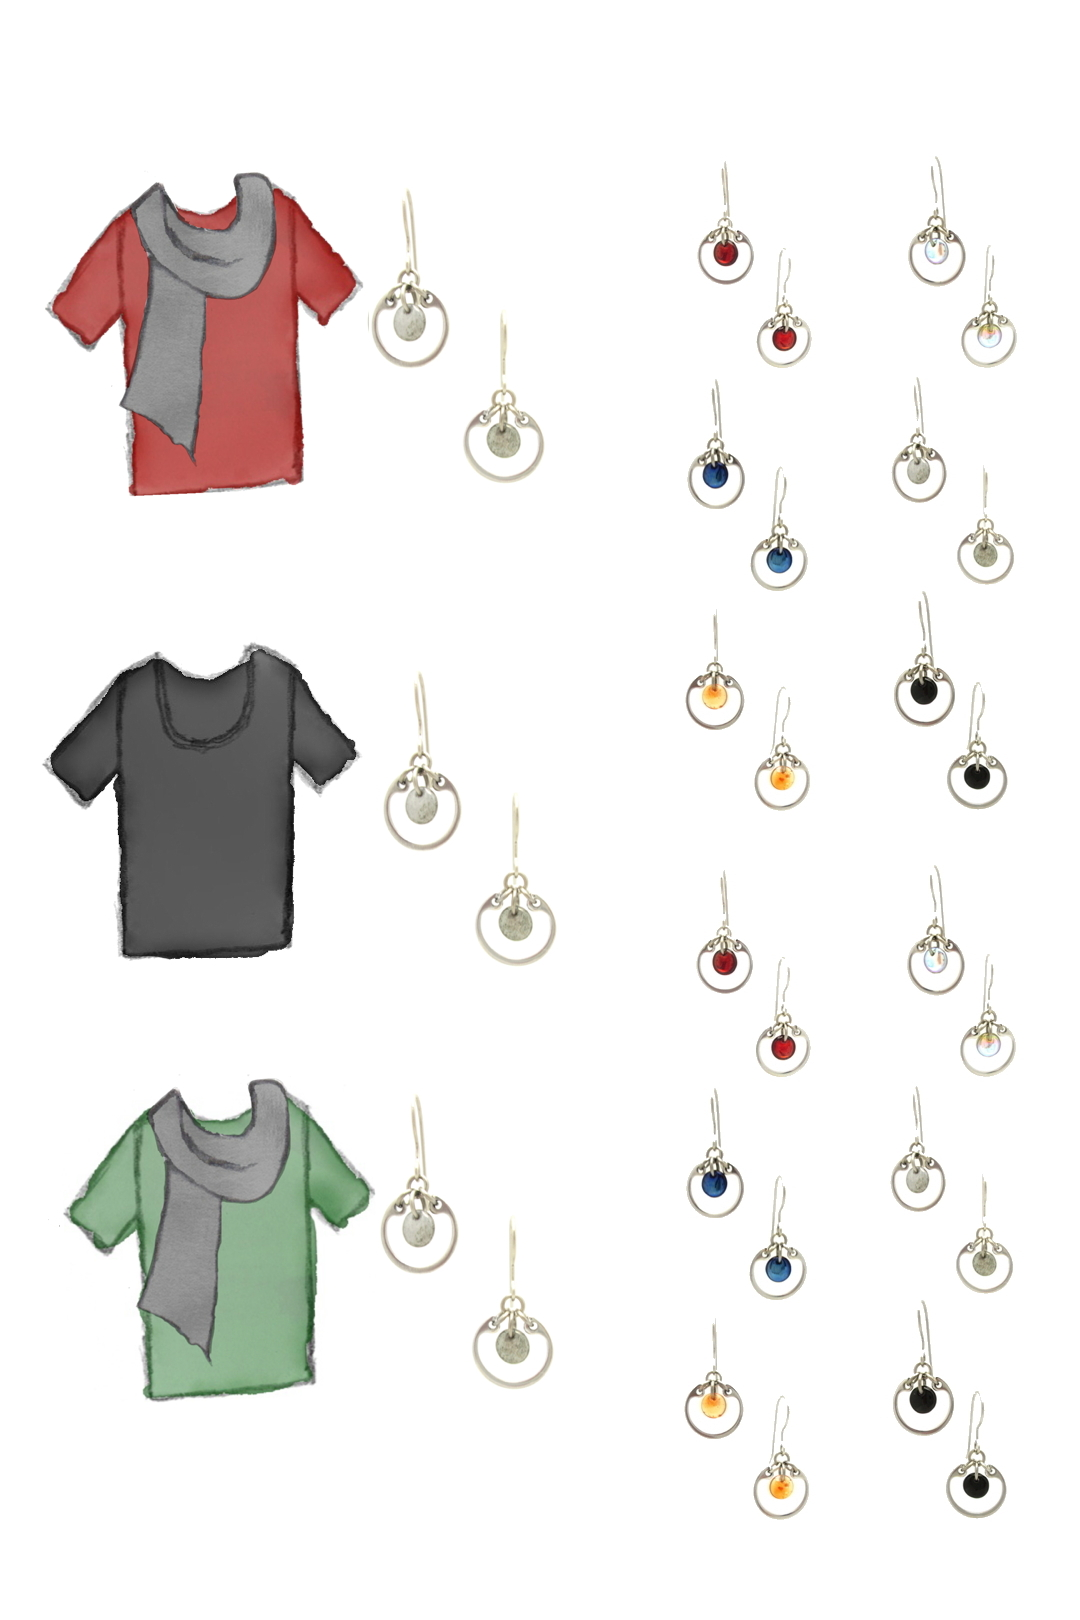 3 style sketches: a red tee with gray scarf, black tee, & green tee with grey scarf, with Wraptillion's small circle earrings in black, red, navy blue, orange, gray, and pale rainbow